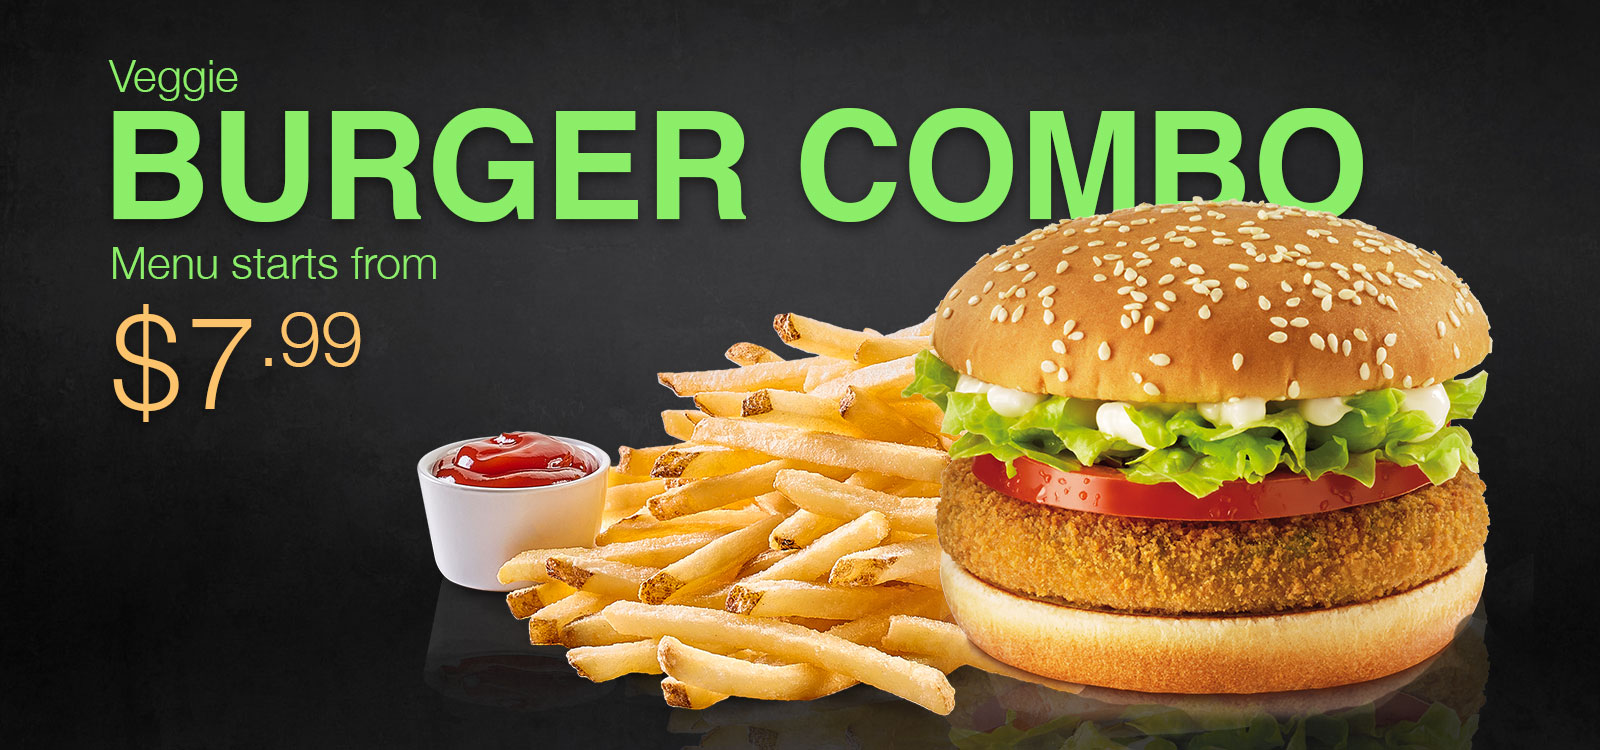 Veggie Planet Deal: Veggie Burger combo deal starting from $7.99